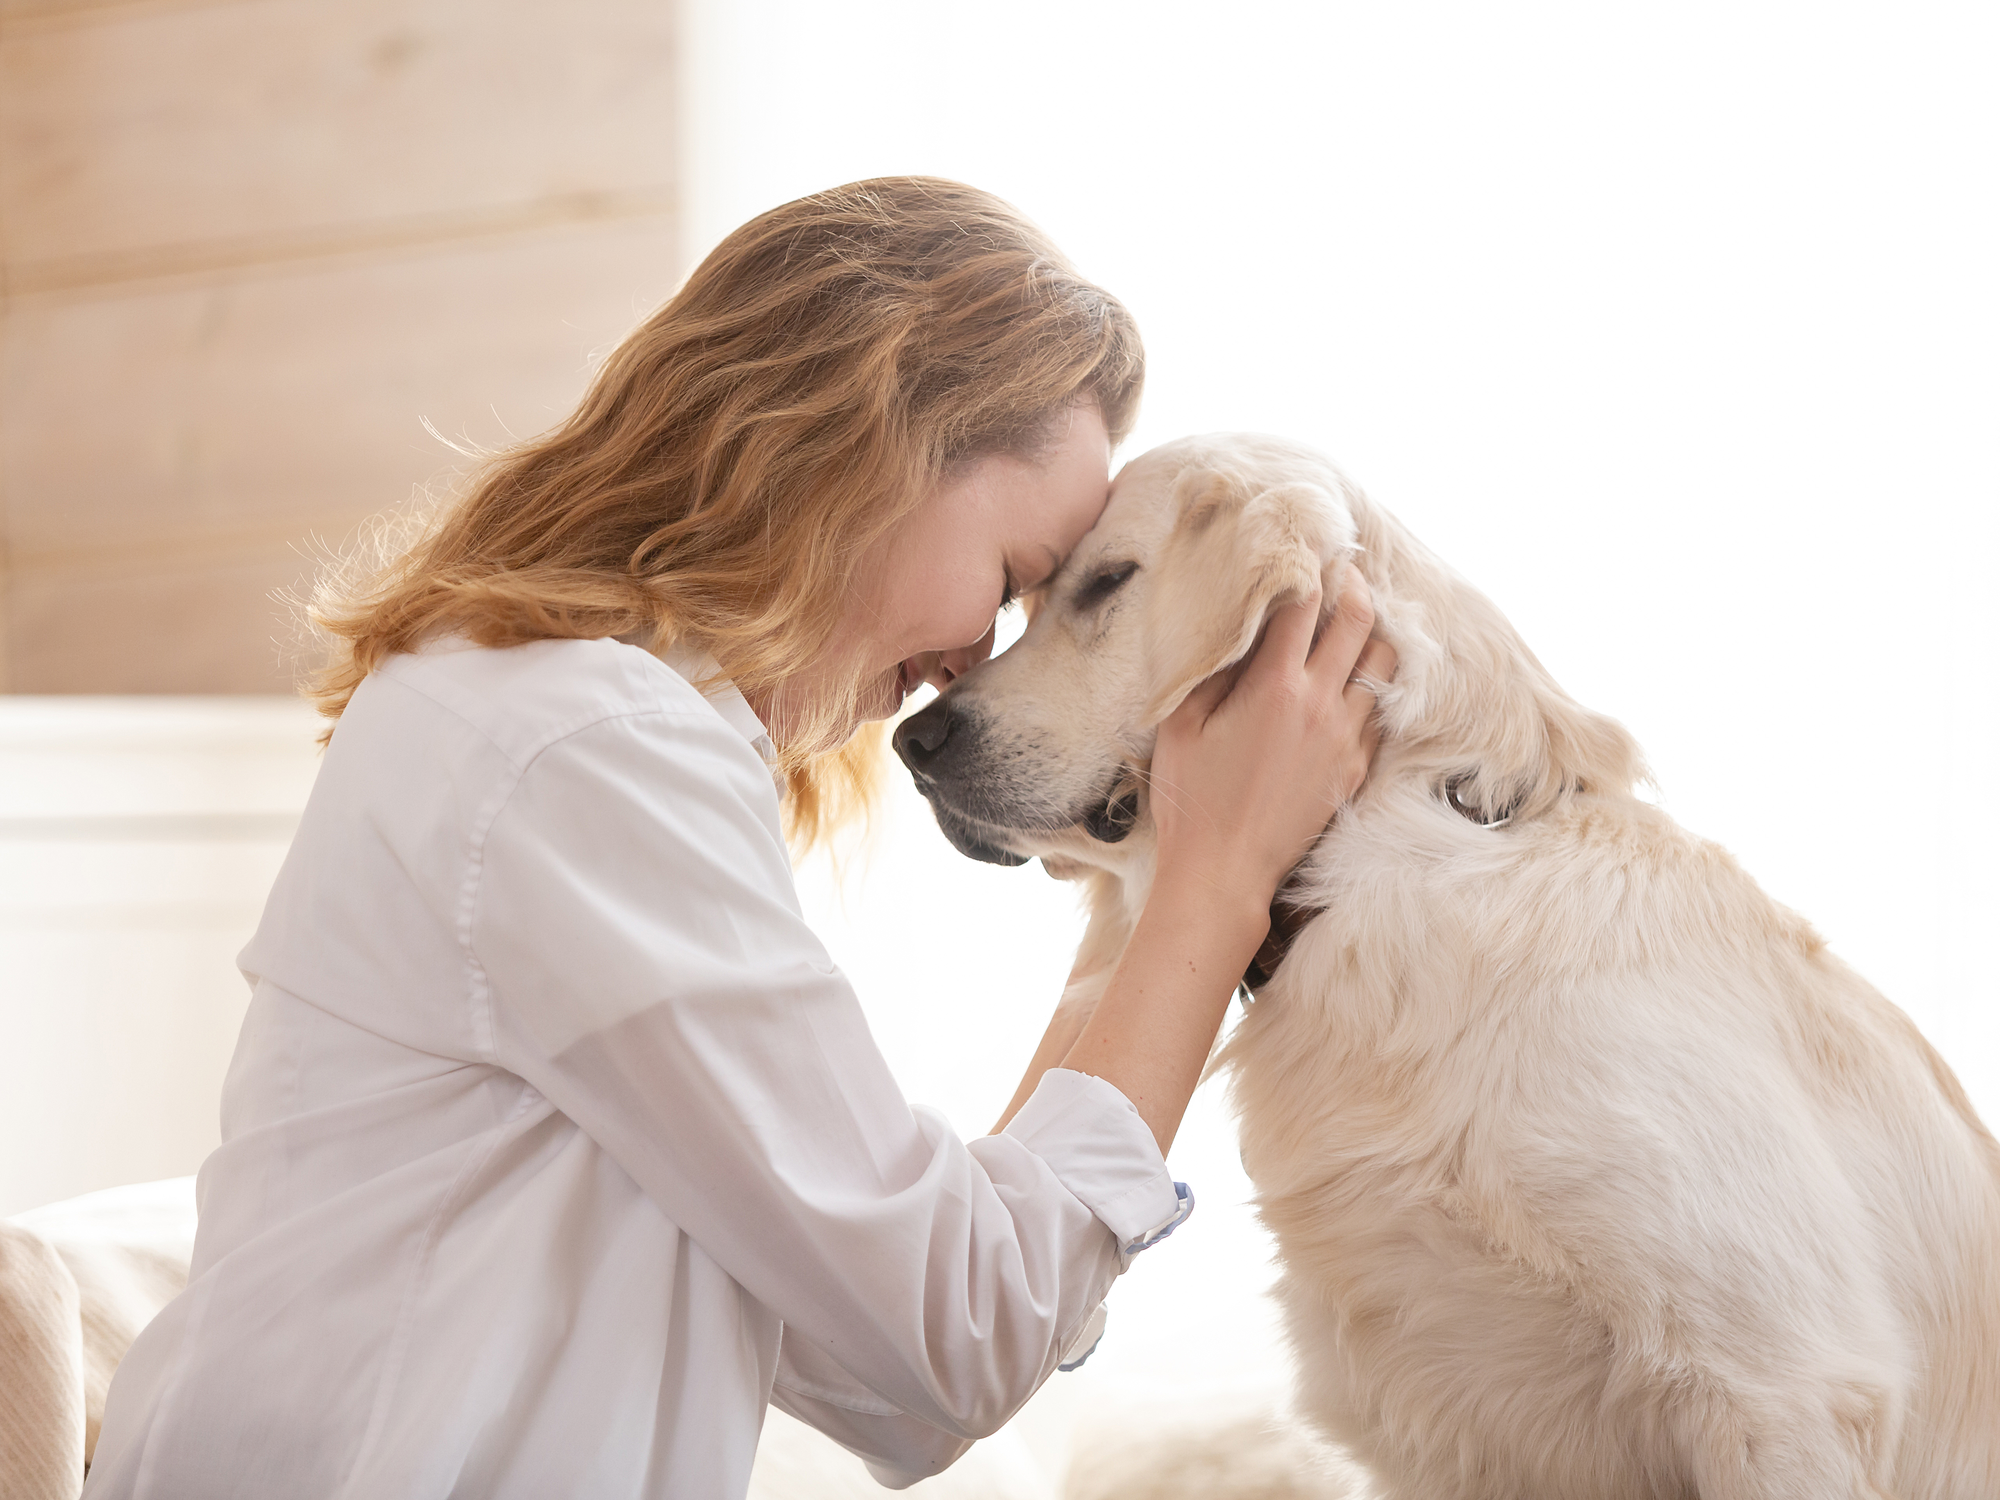 Senior pet care: How pet's needs change as they age